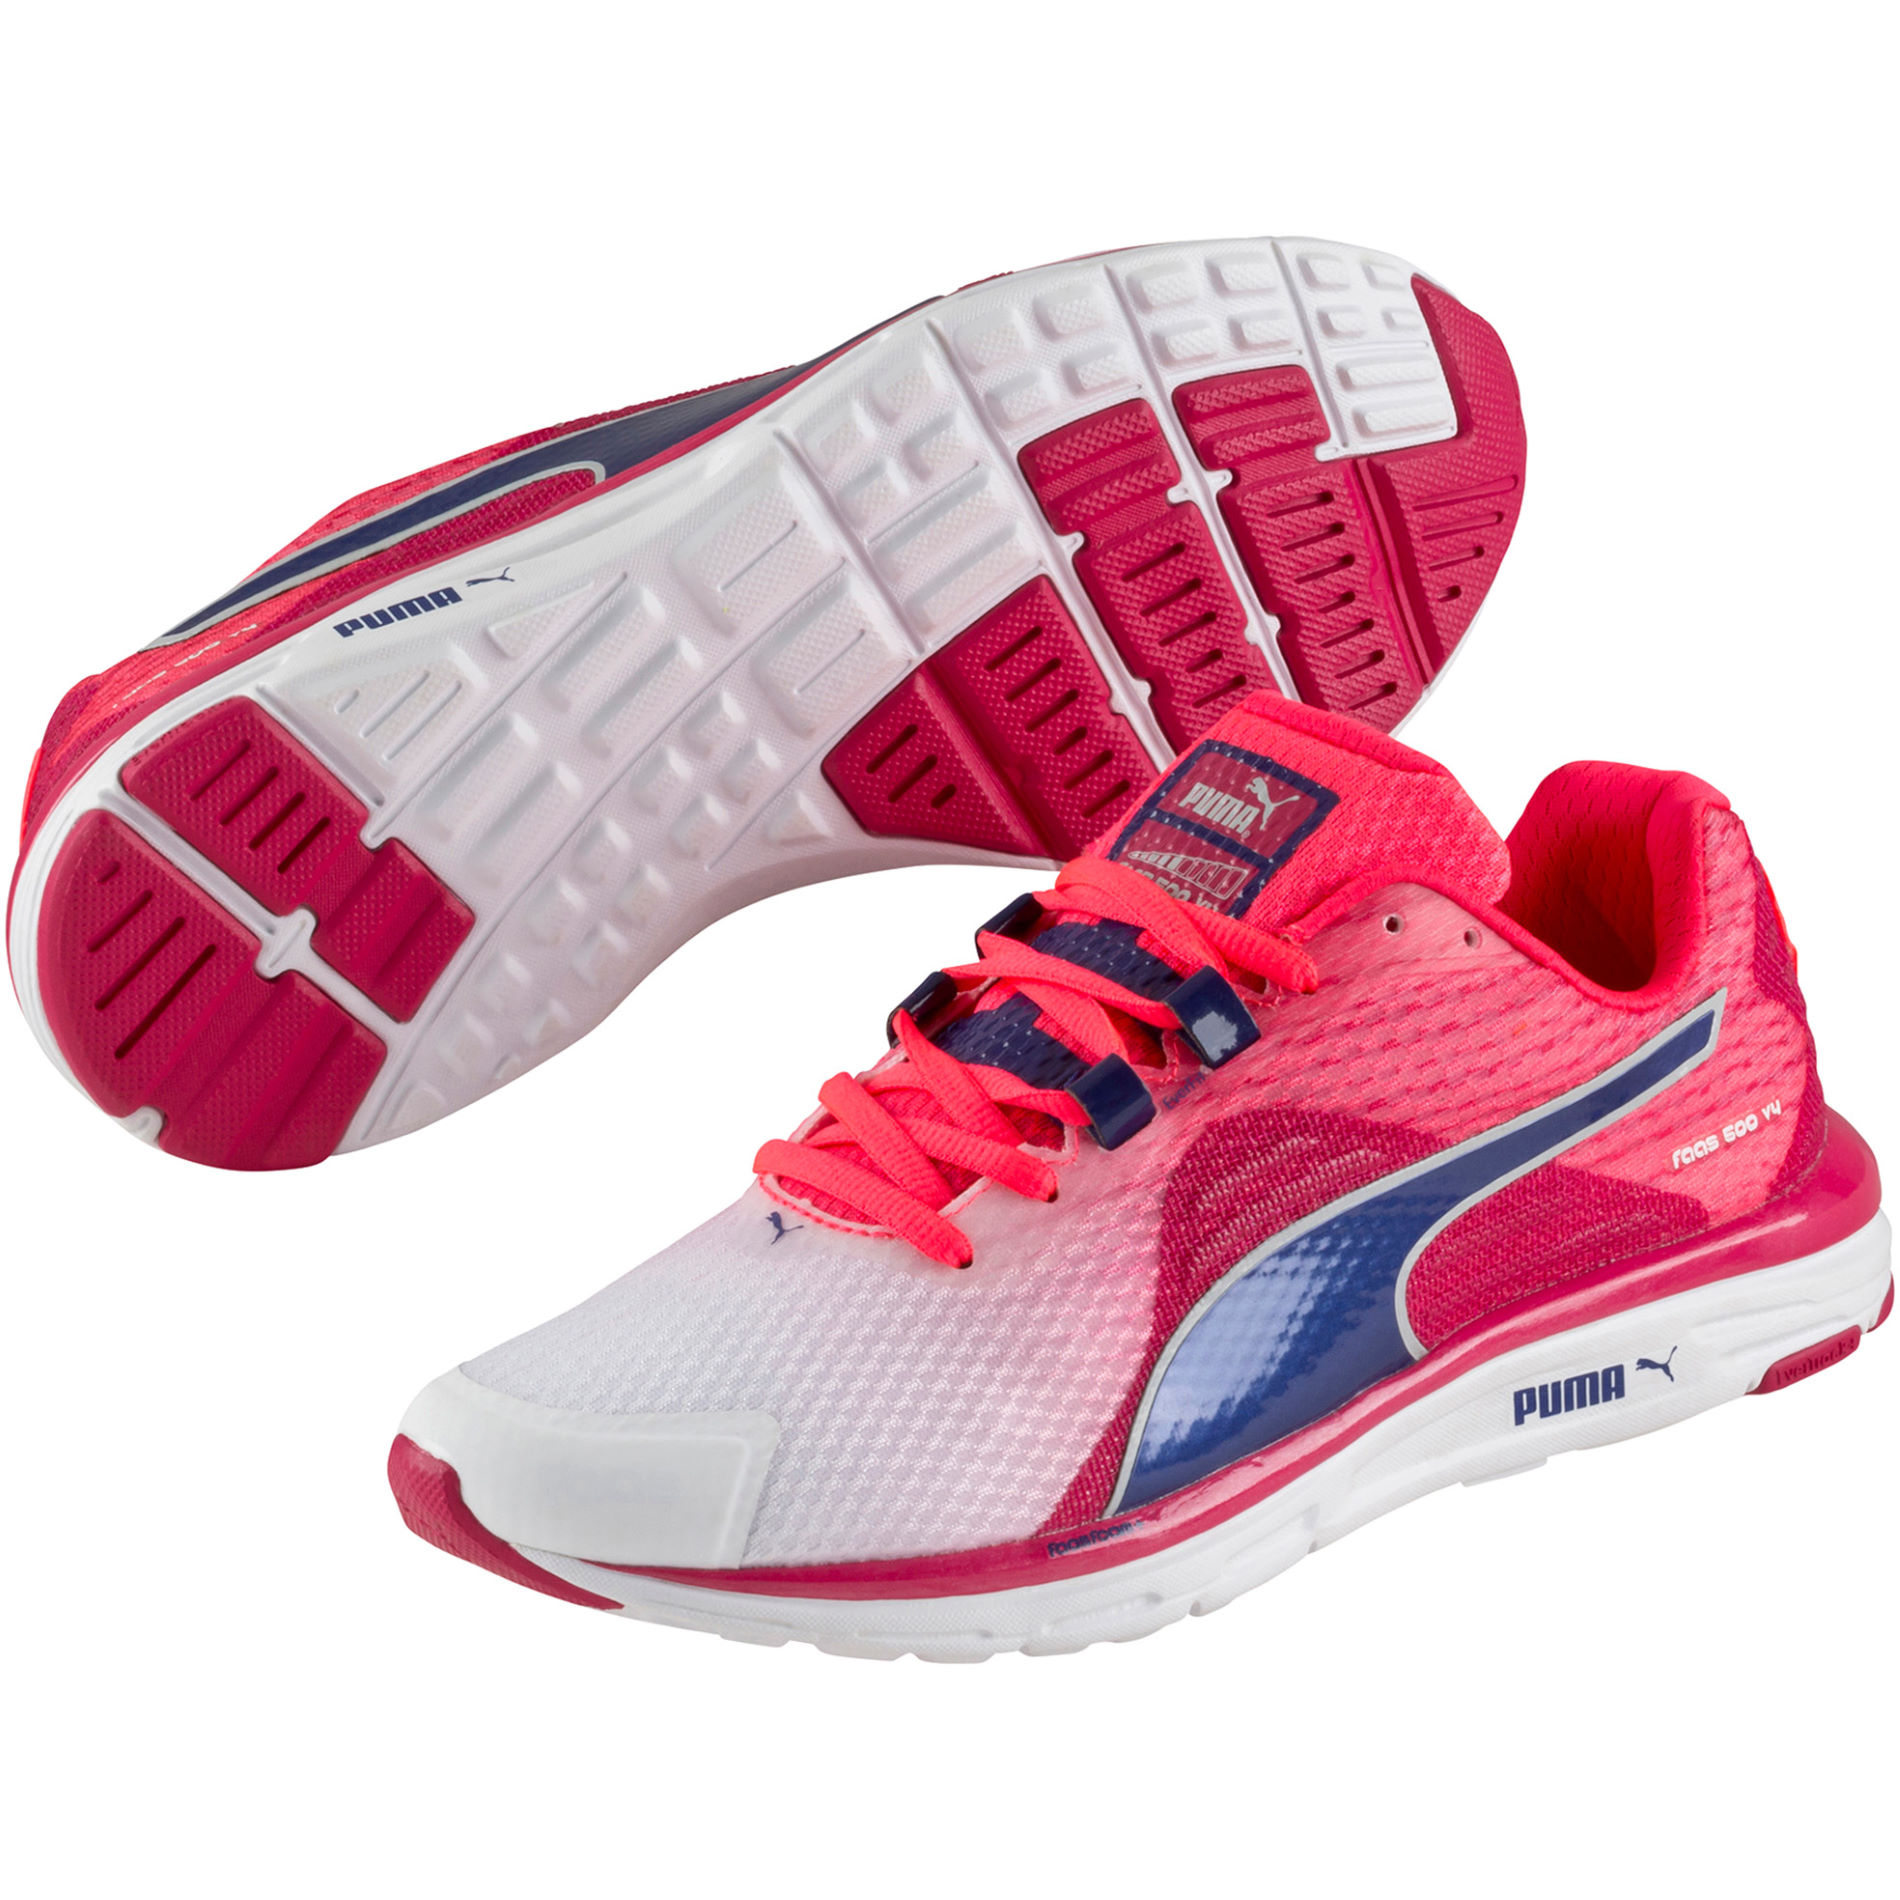 newest cc912 fd580 Wiggle Cycle To Work | Puma Women's Faas 500 V4 Shoes - SS15 ...